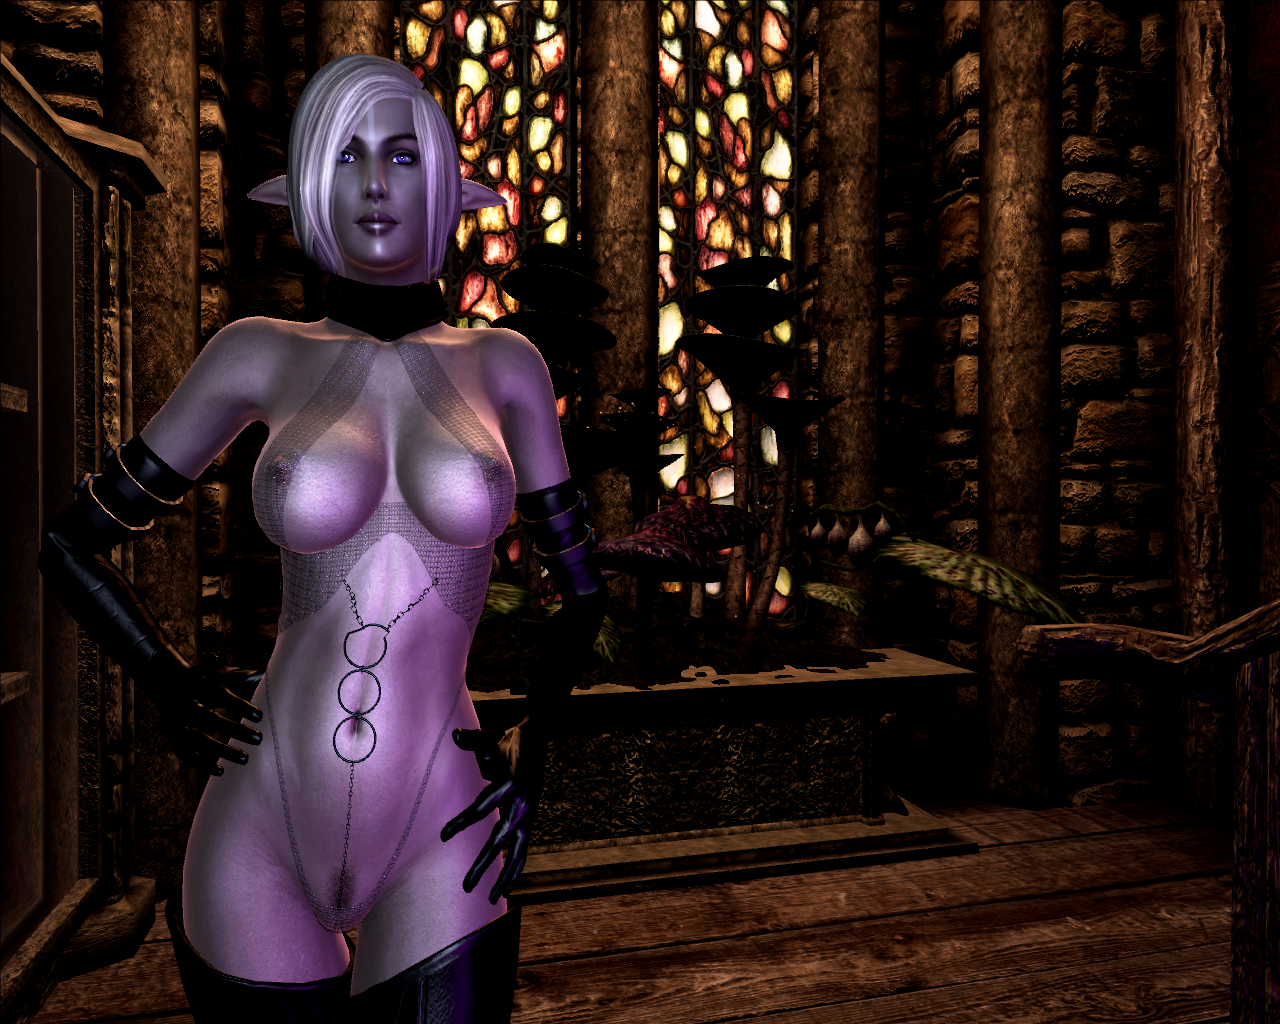 Nude mod in wow